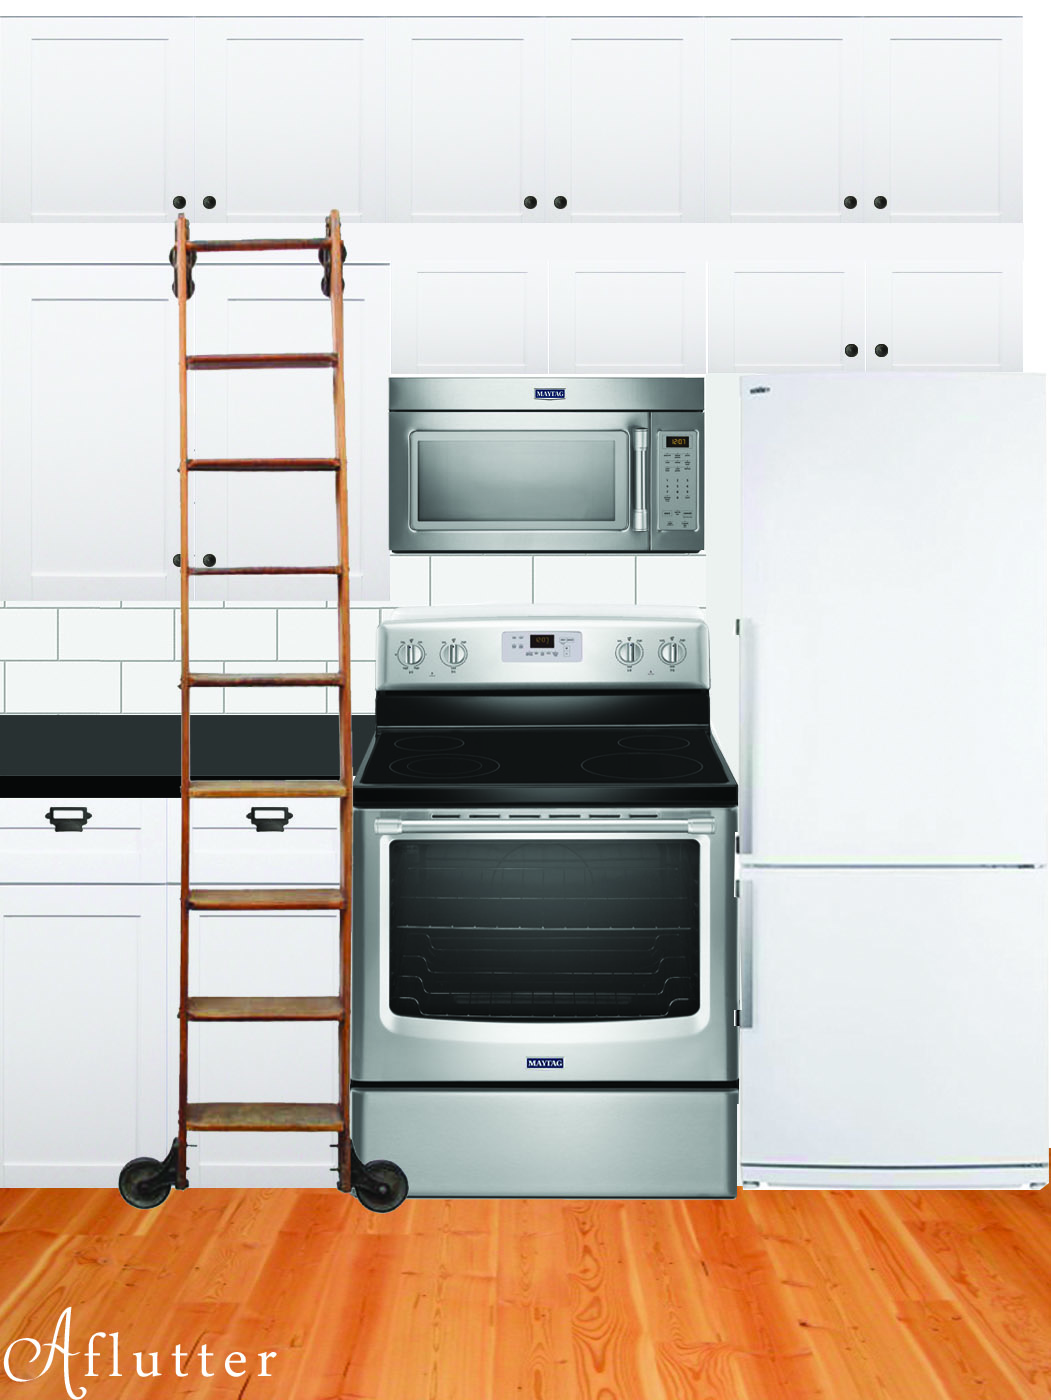 Stainless range and microwave